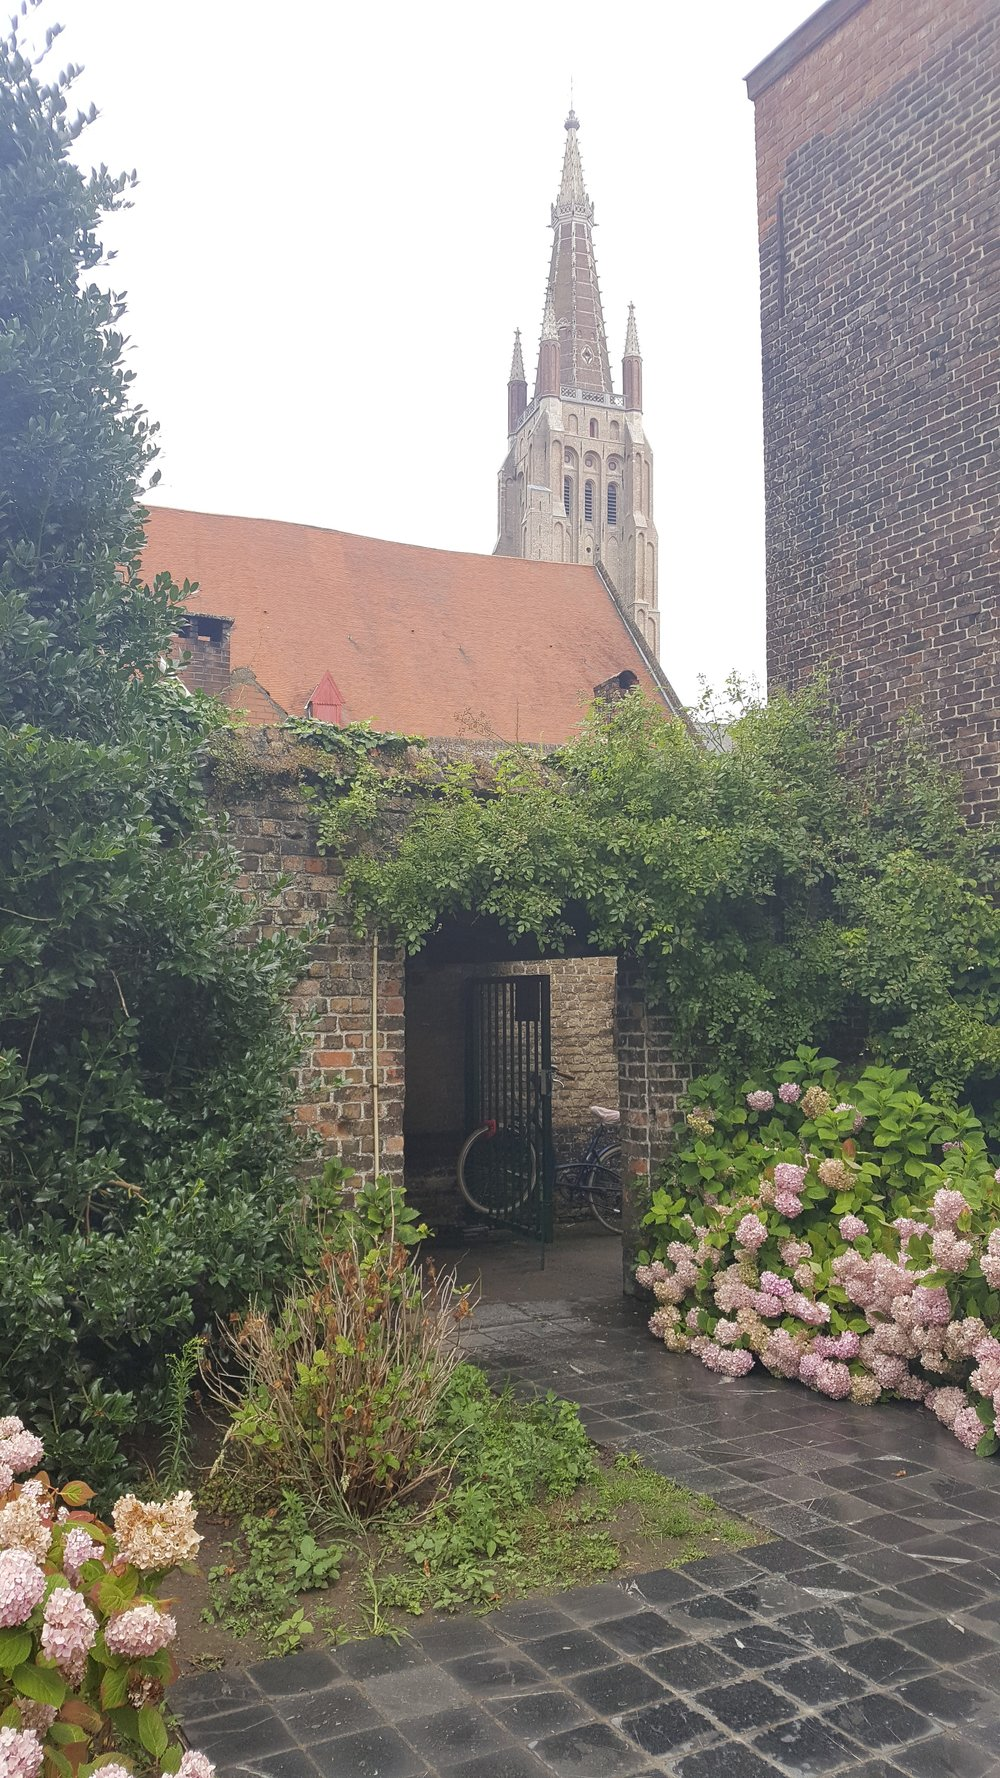 Entrance to the Godhuis Spanoghe (You can find it at Katelljnestraat 8-18). A beautiful private garden.